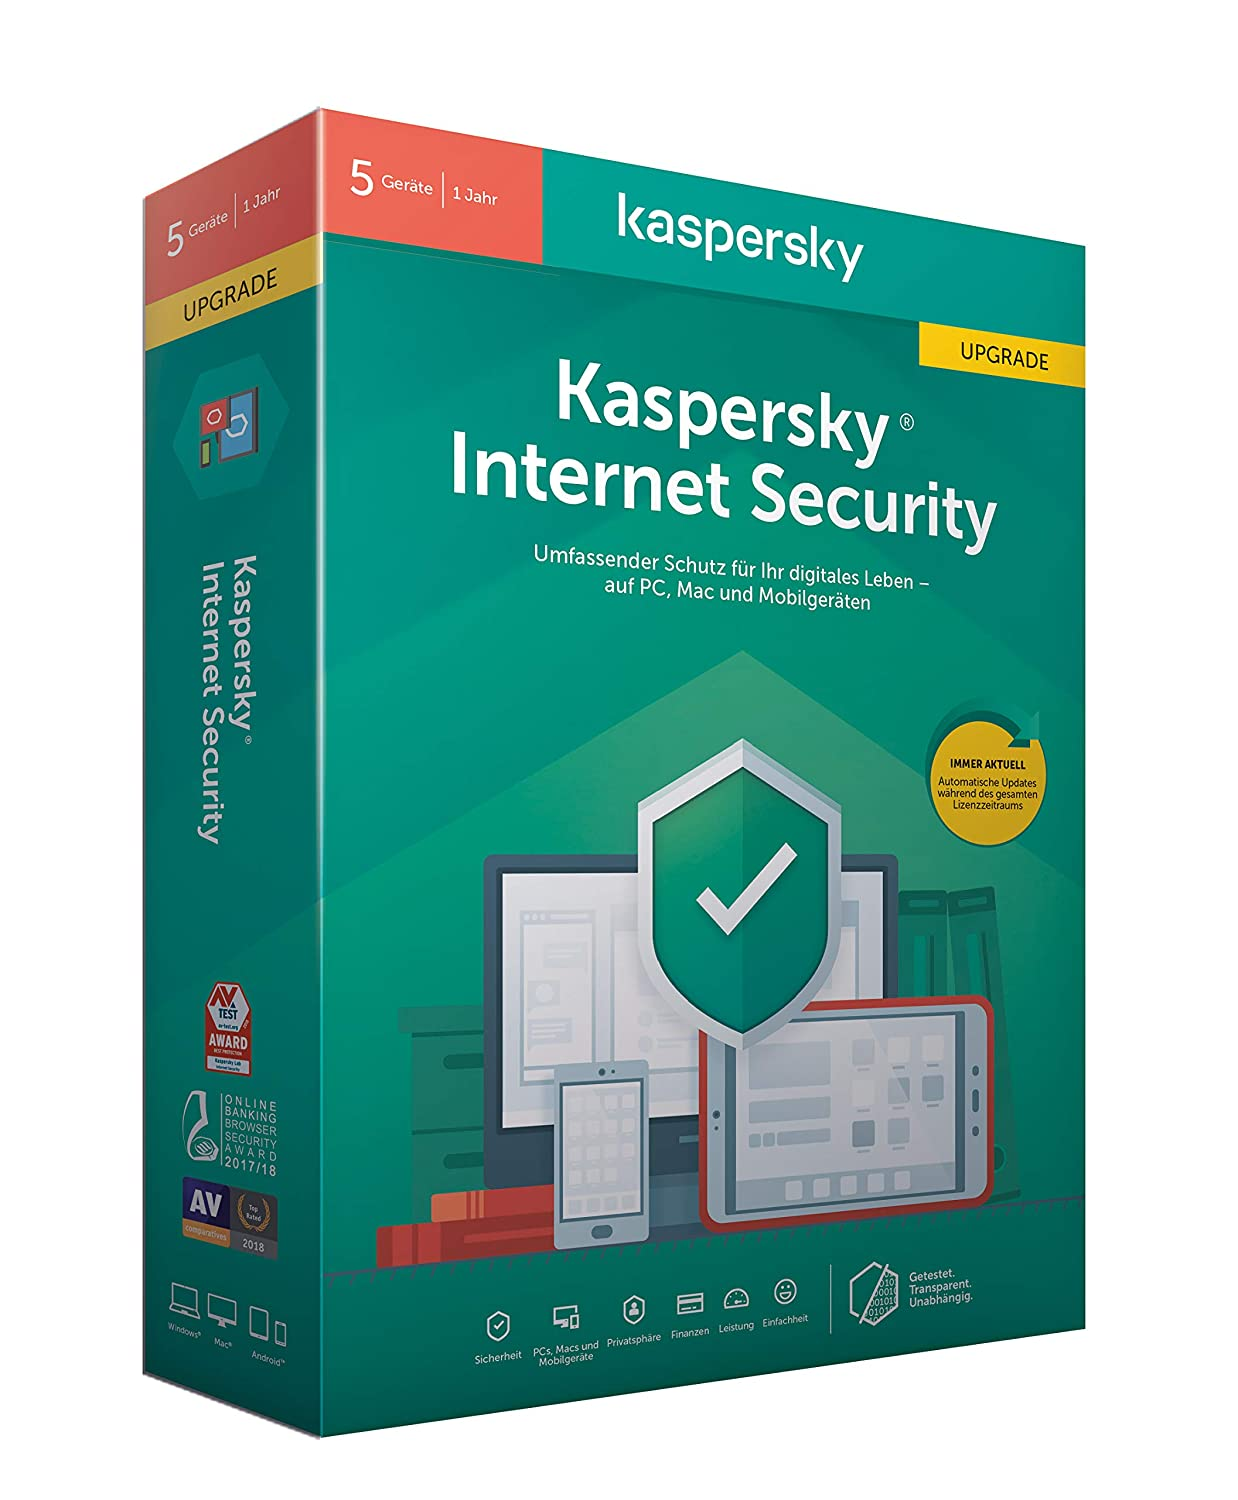 Kaspersky Internet Security 5 Geräte Upgrade (Code in a Box). Für Windows 7/8/10/MAC/Android